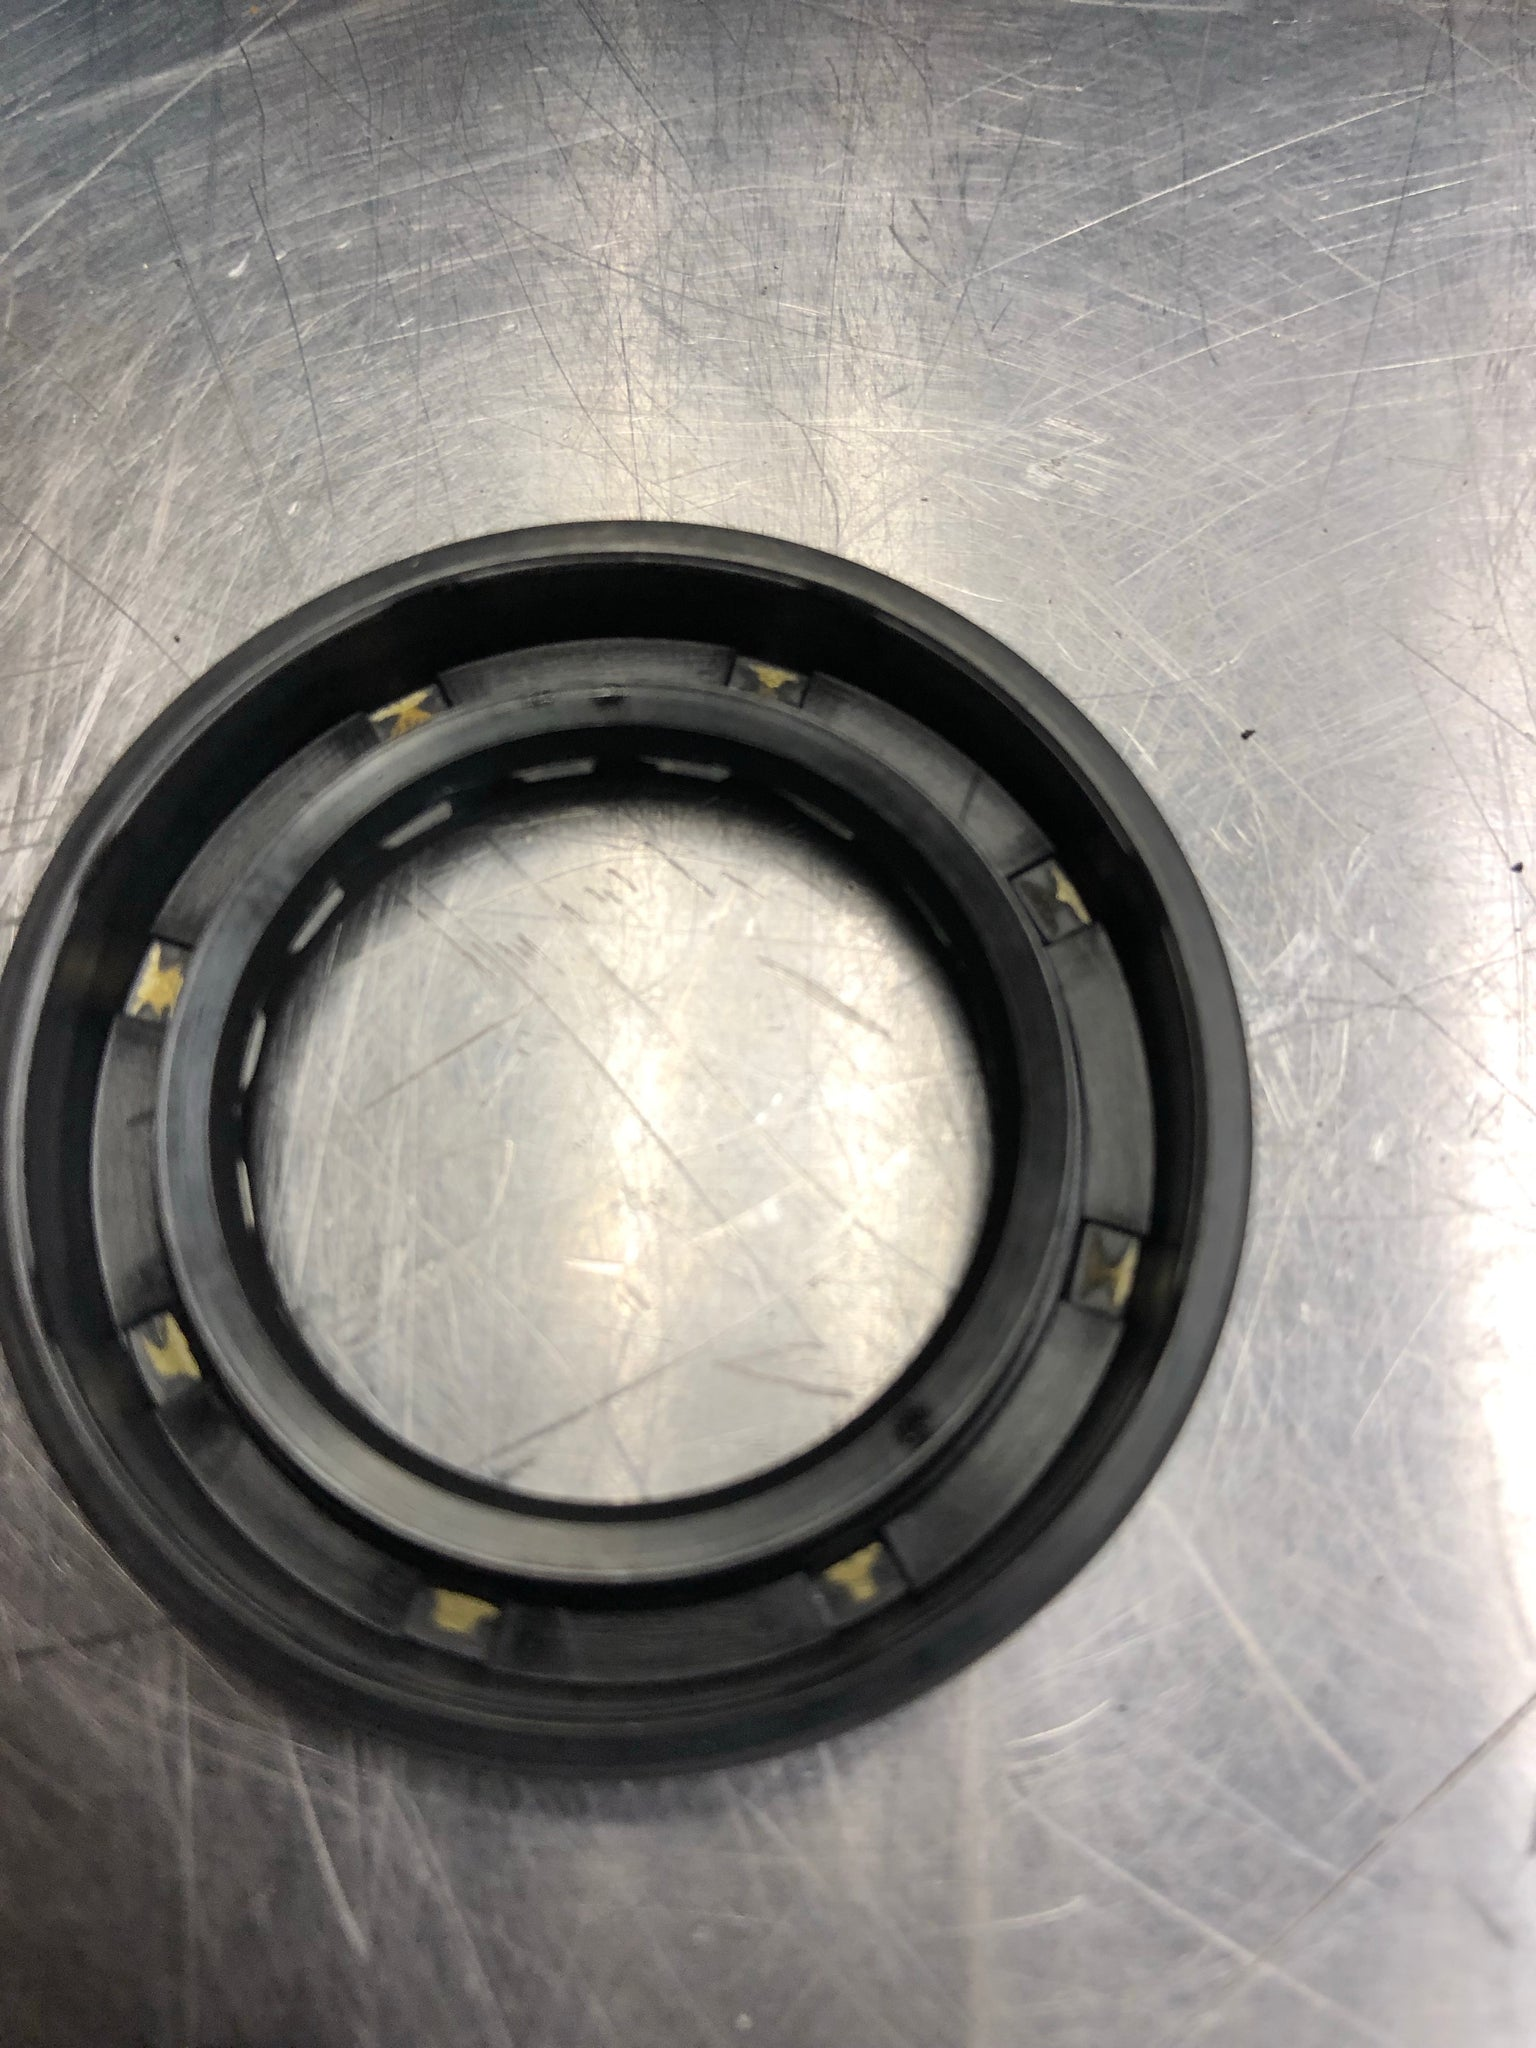 GY6 axle seal